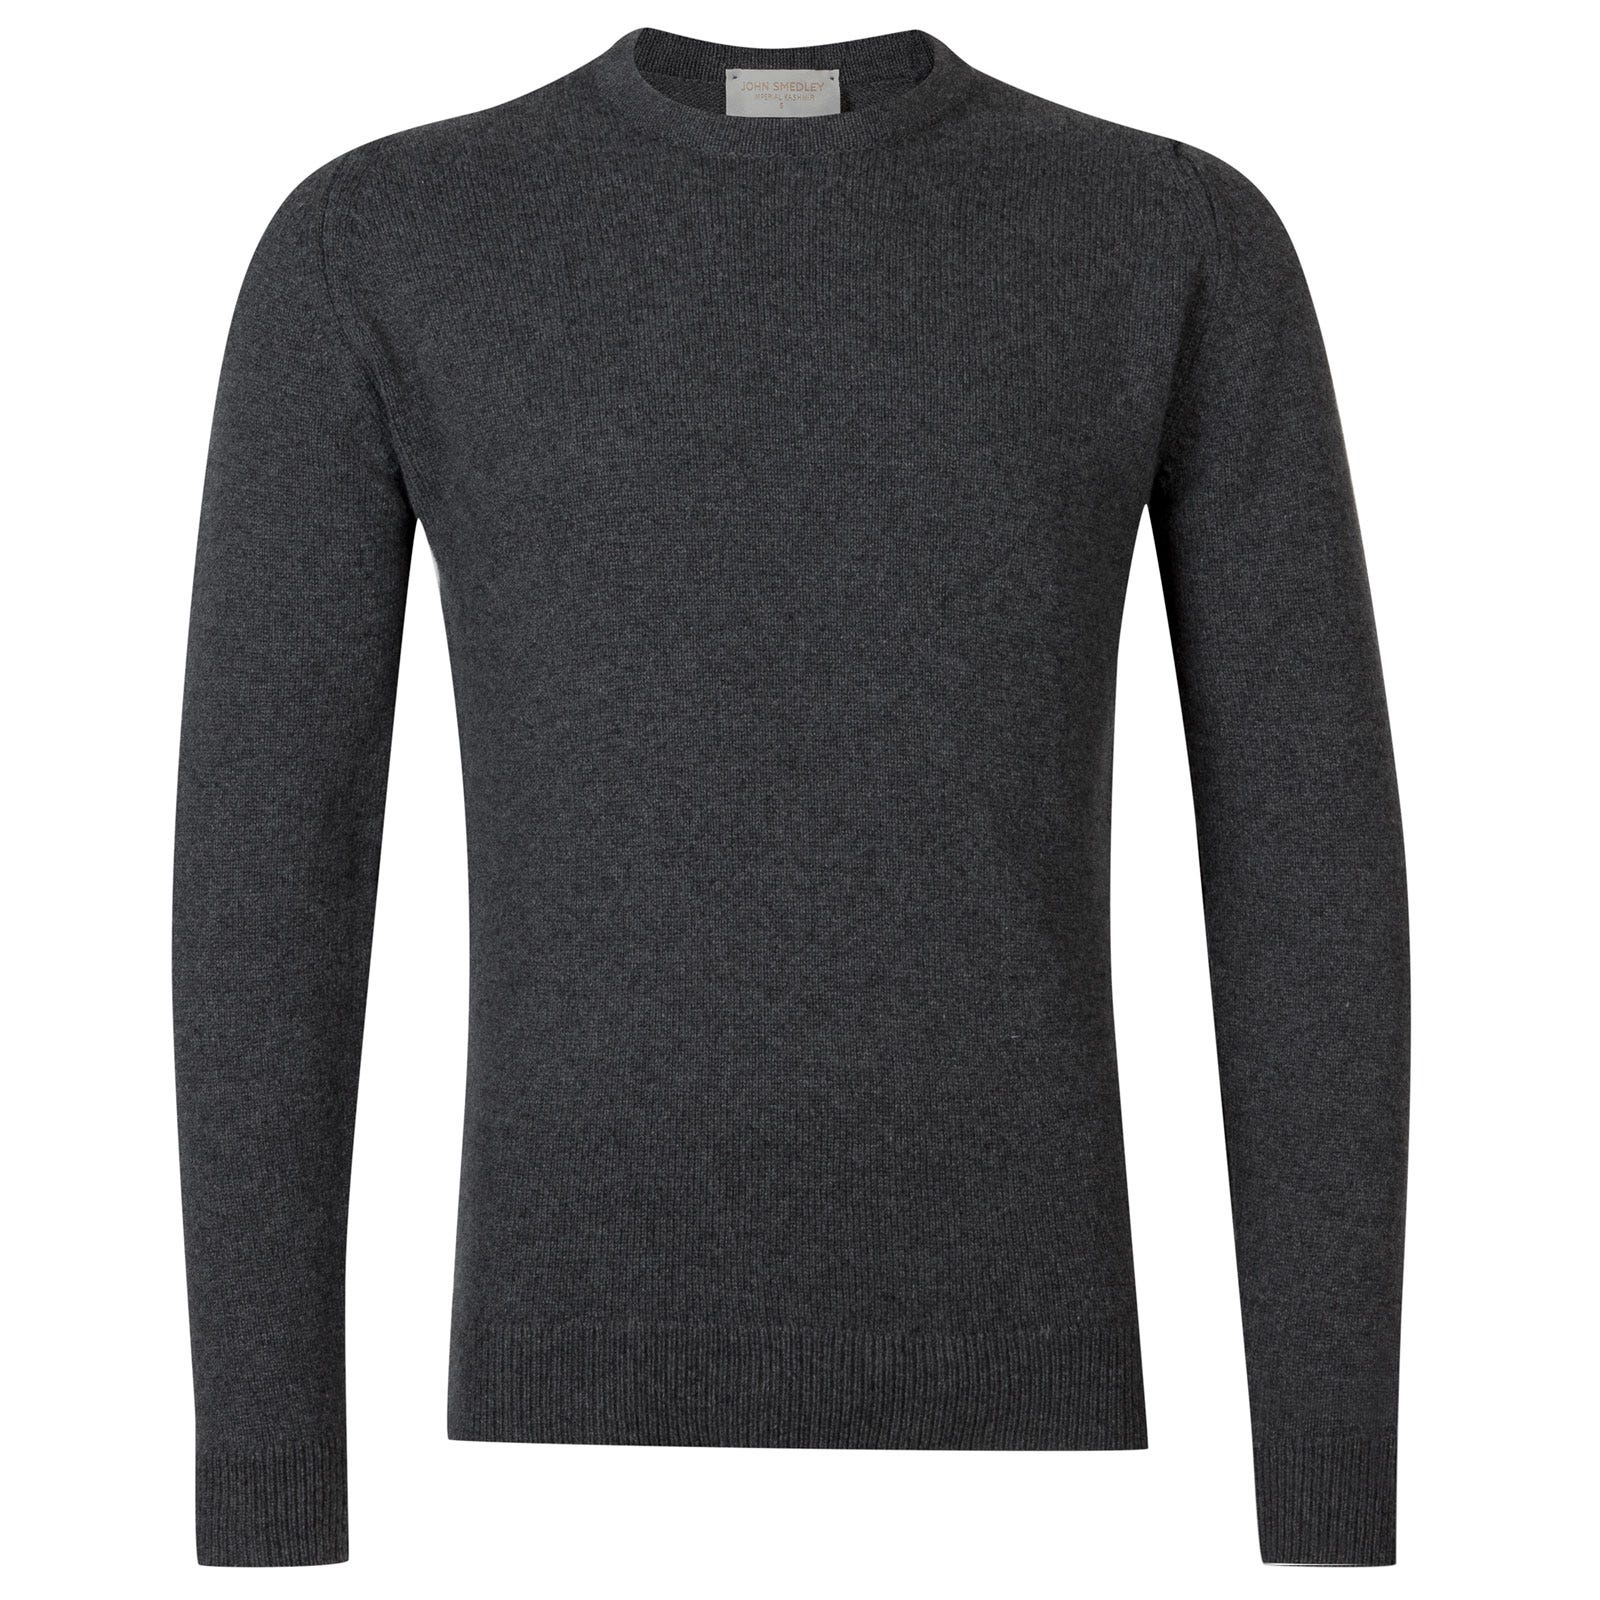 John Smedley Crowford Wool and Cashmere Pullover in Charcoal-L